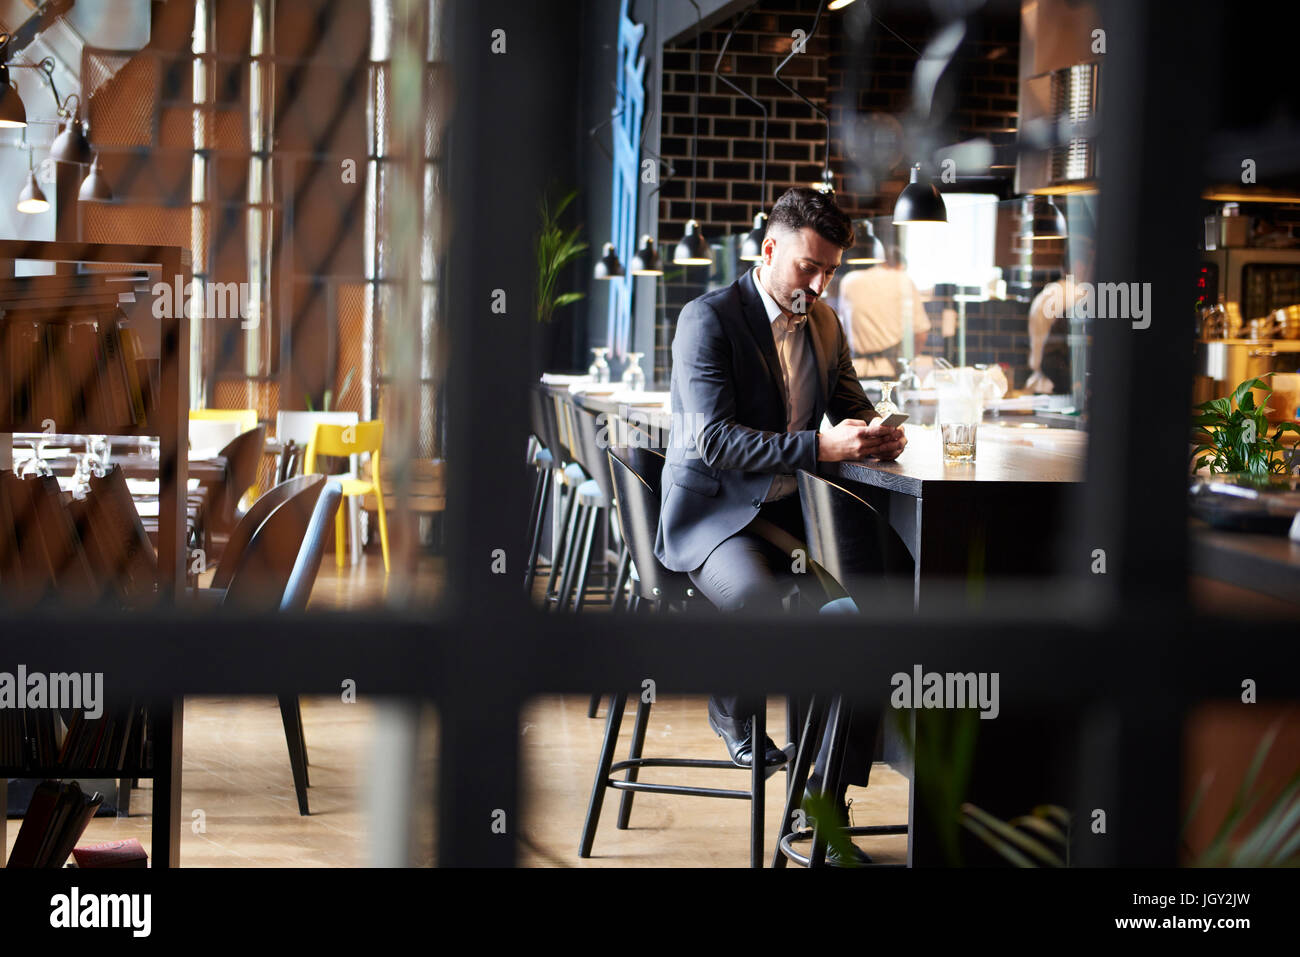 Disappointed man looking at smartphone while sitting at bar - Stock Image